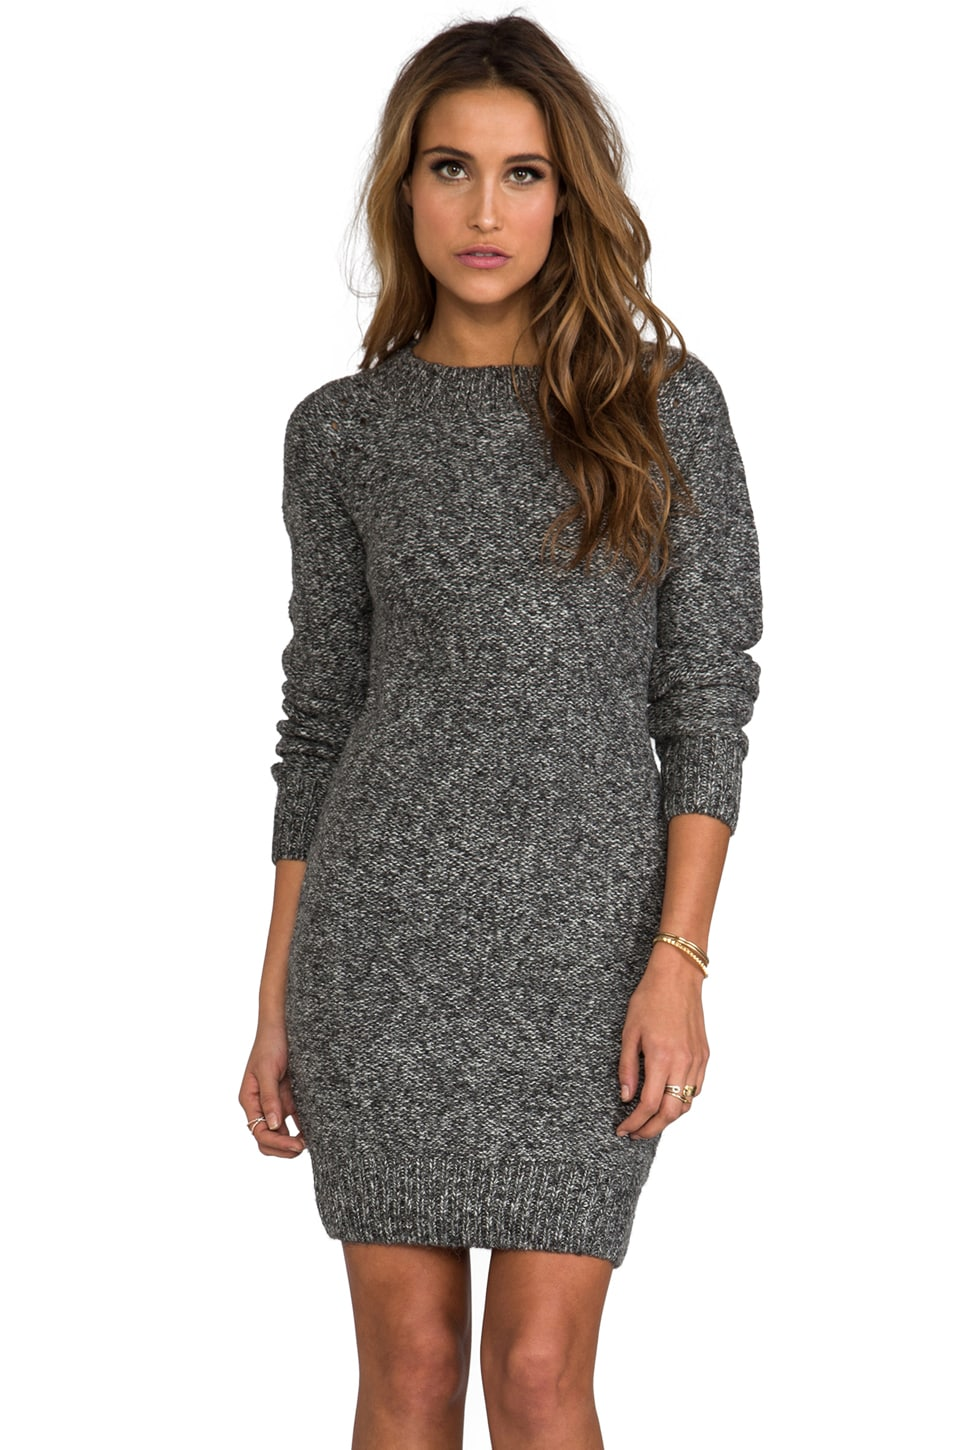 Funktional Orion Sweater Dress in Charcoal